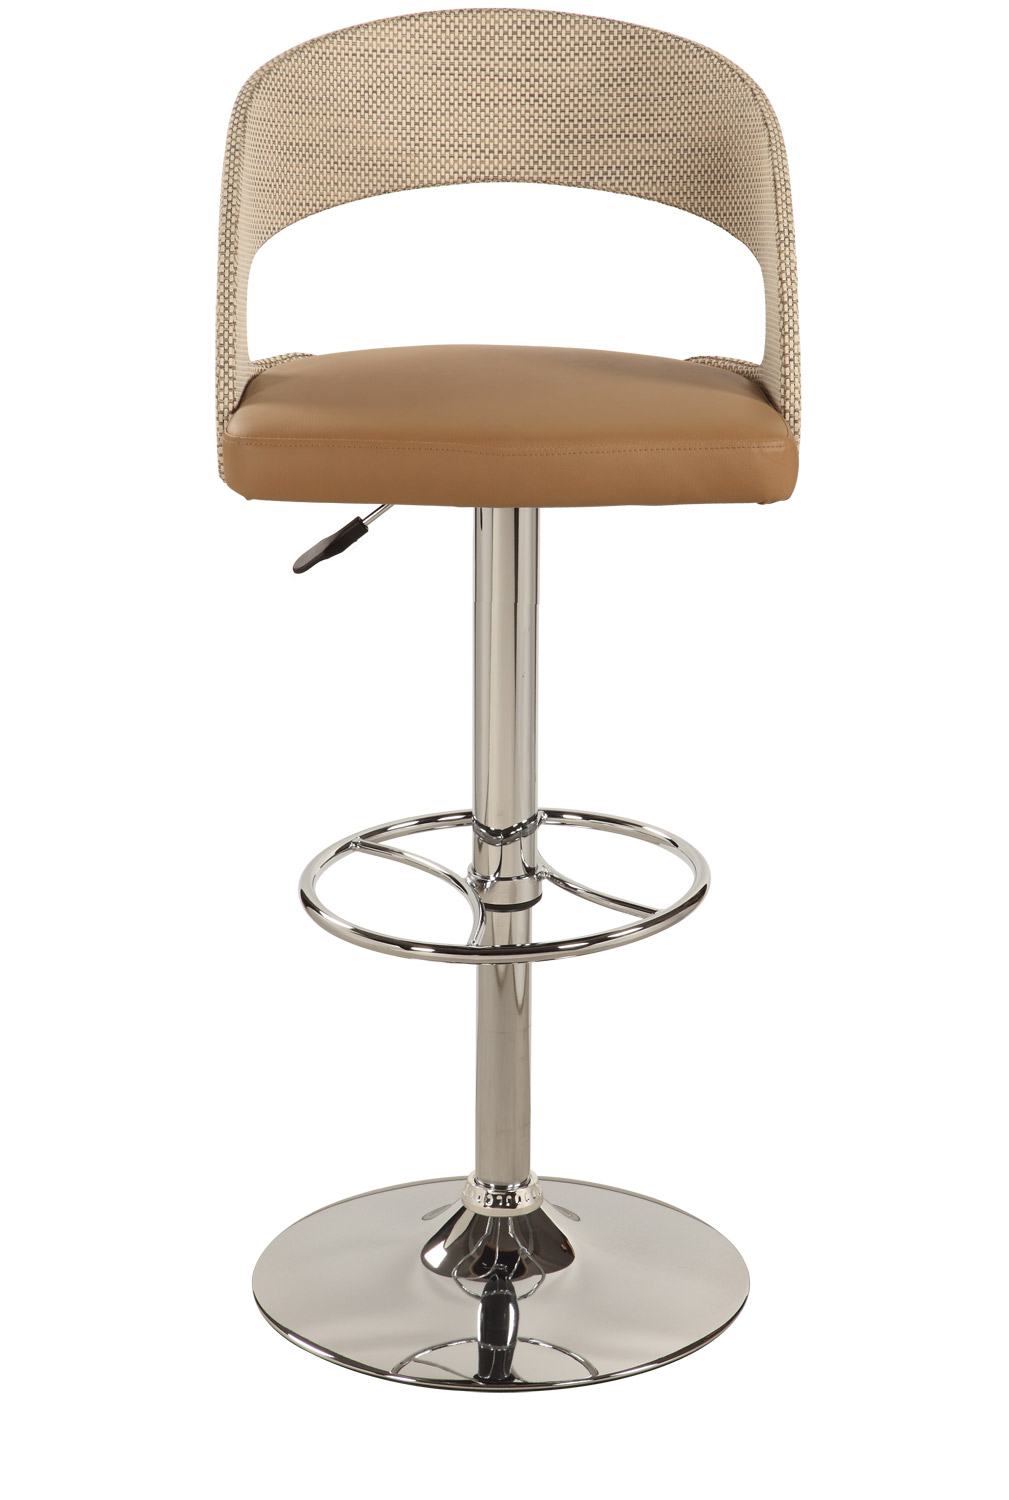 Chintaly Imports 1391 Curved Round Back Pneumatic Swivel Stool - Chrome/ Beige